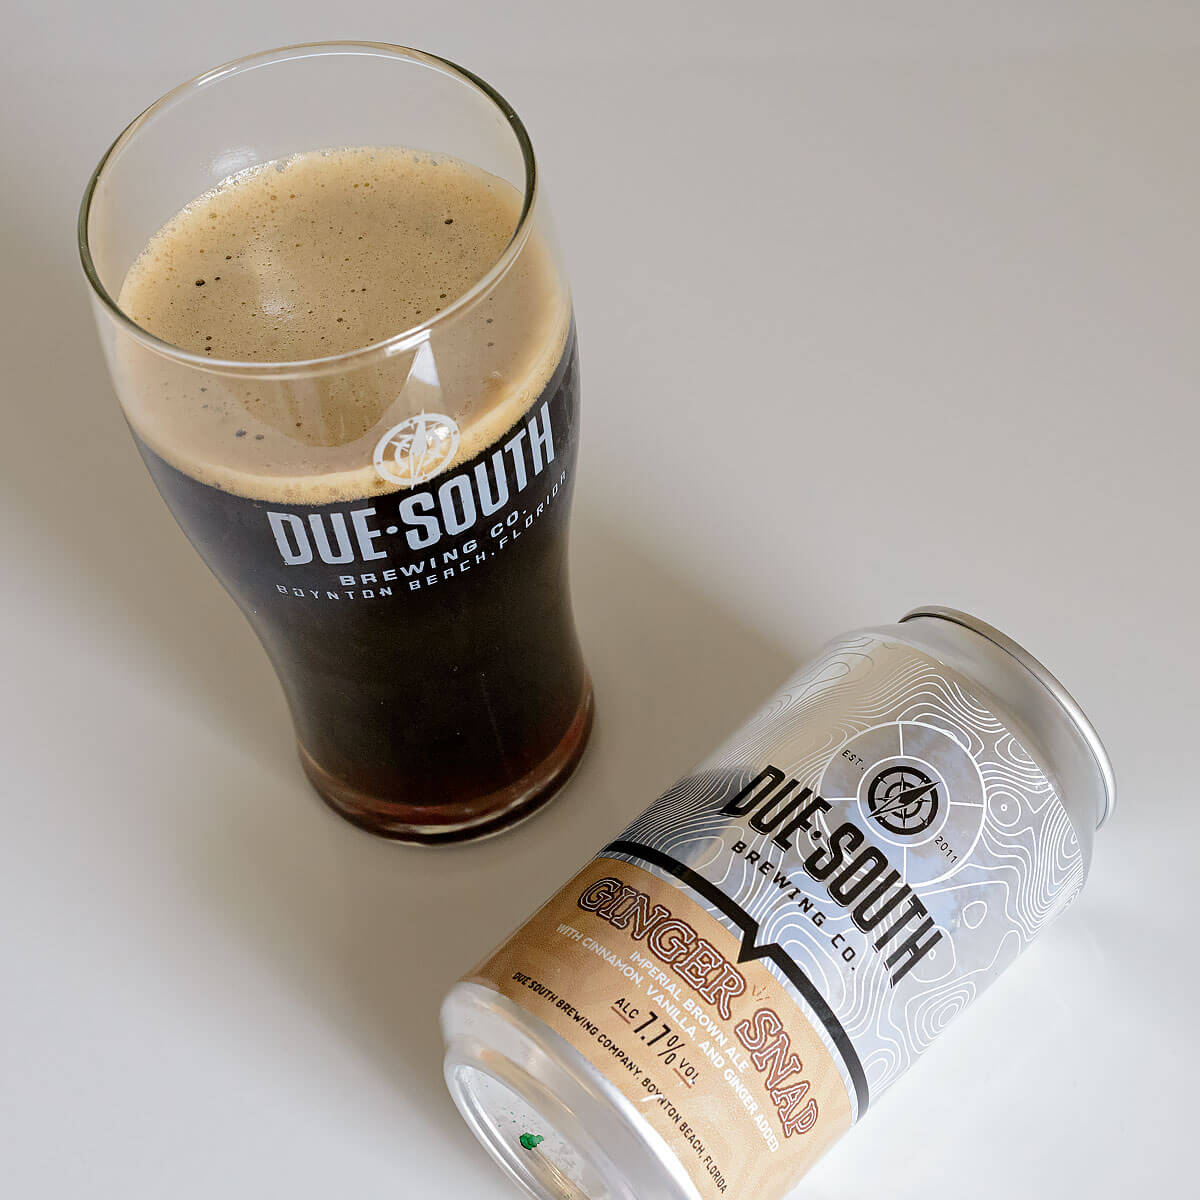 Ginger Snap, an American Brown Ale by Due South Brewing Co.